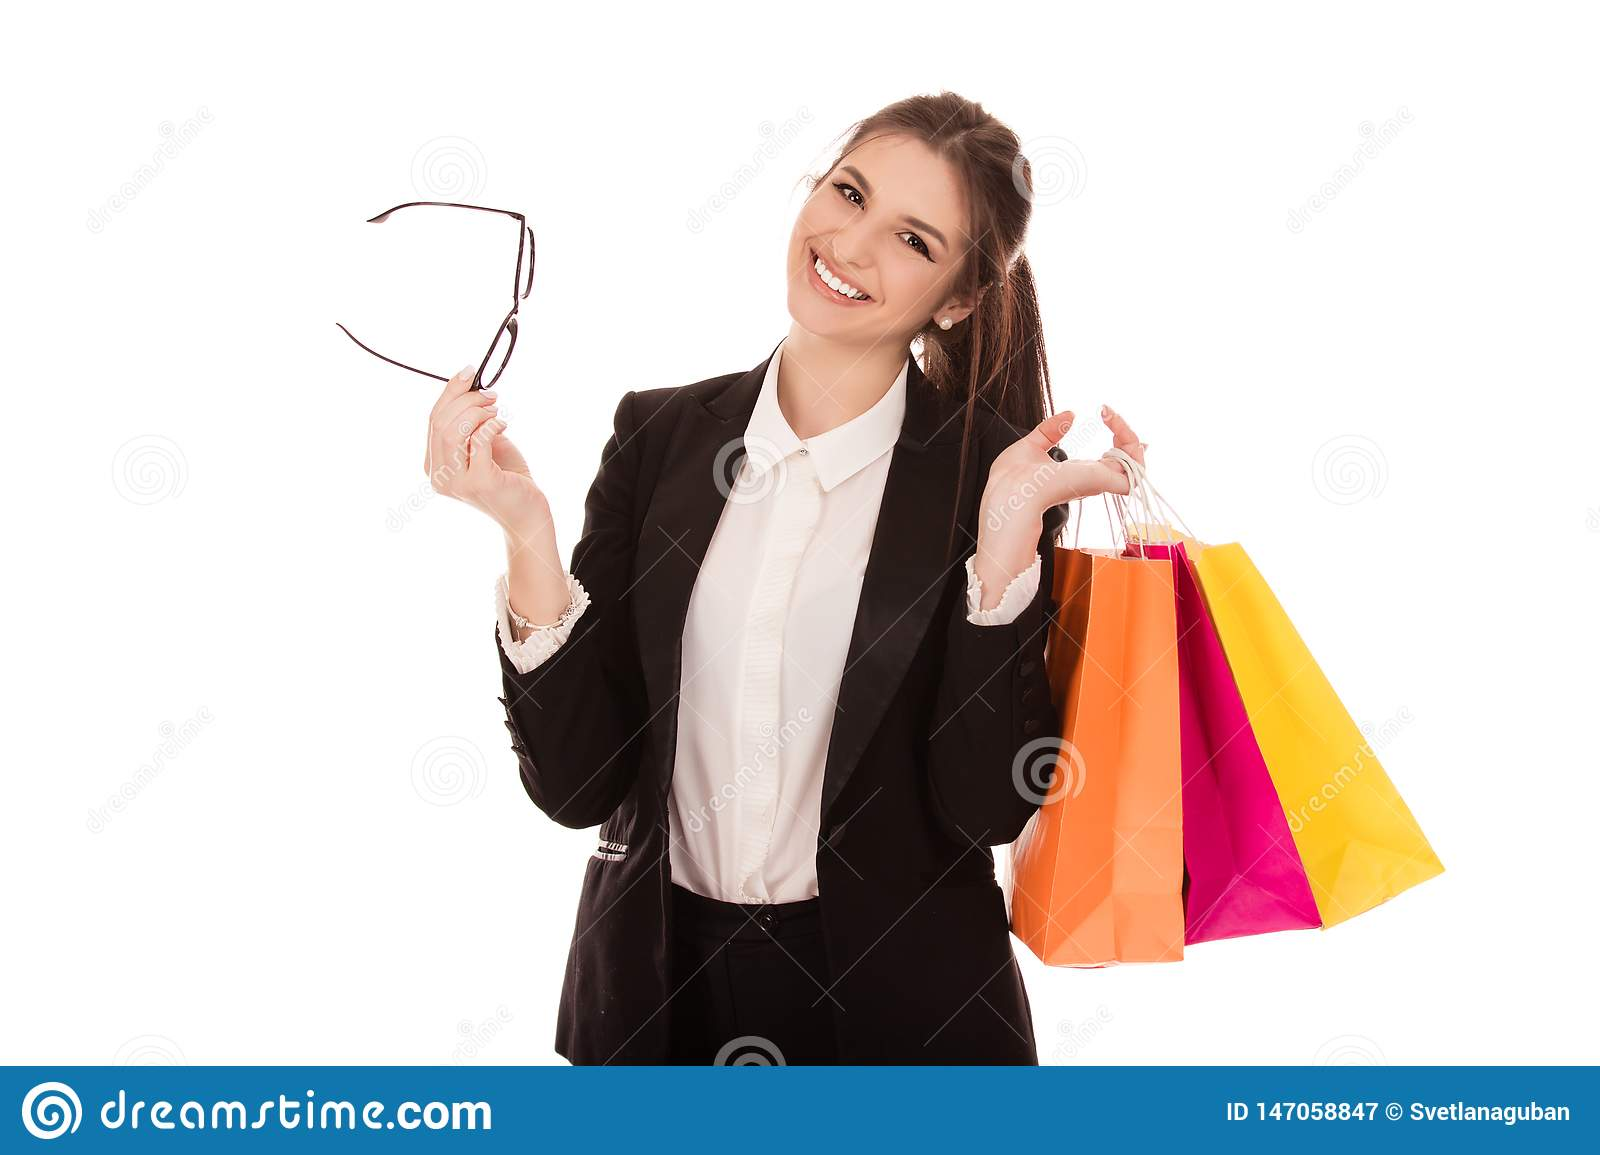 Lovely woman holding shopping bags and eye glasses